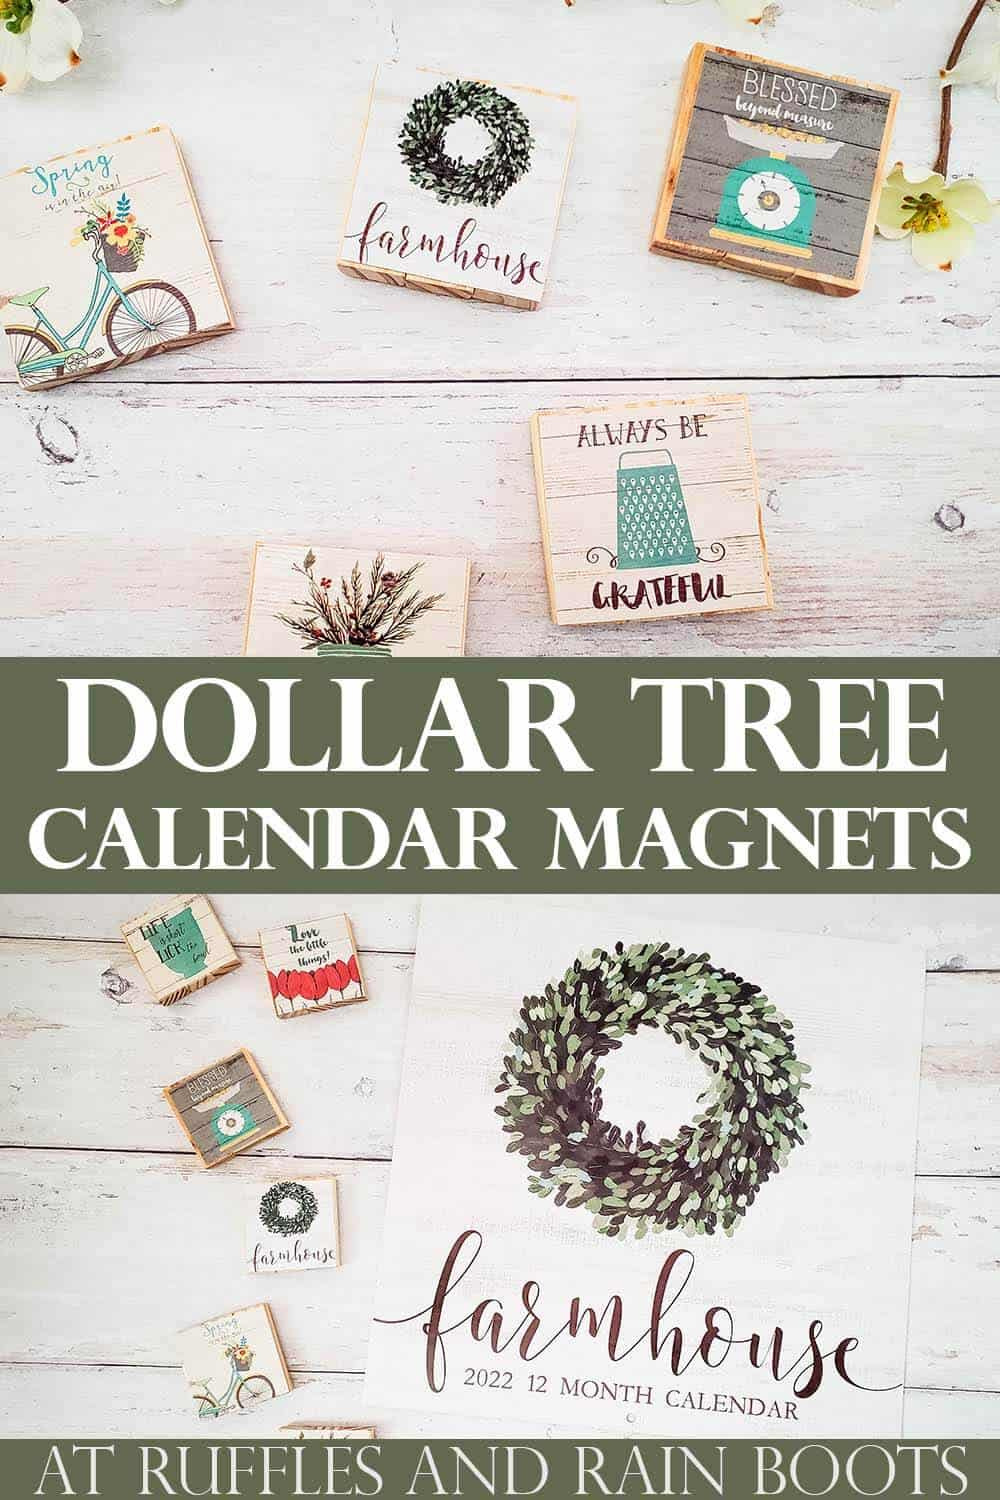 vertical collage image of rustic magnets on white wood background with a dollar tree farmhouse calendar on the bottom and text which reads Dollar Tree Calendar Magnets